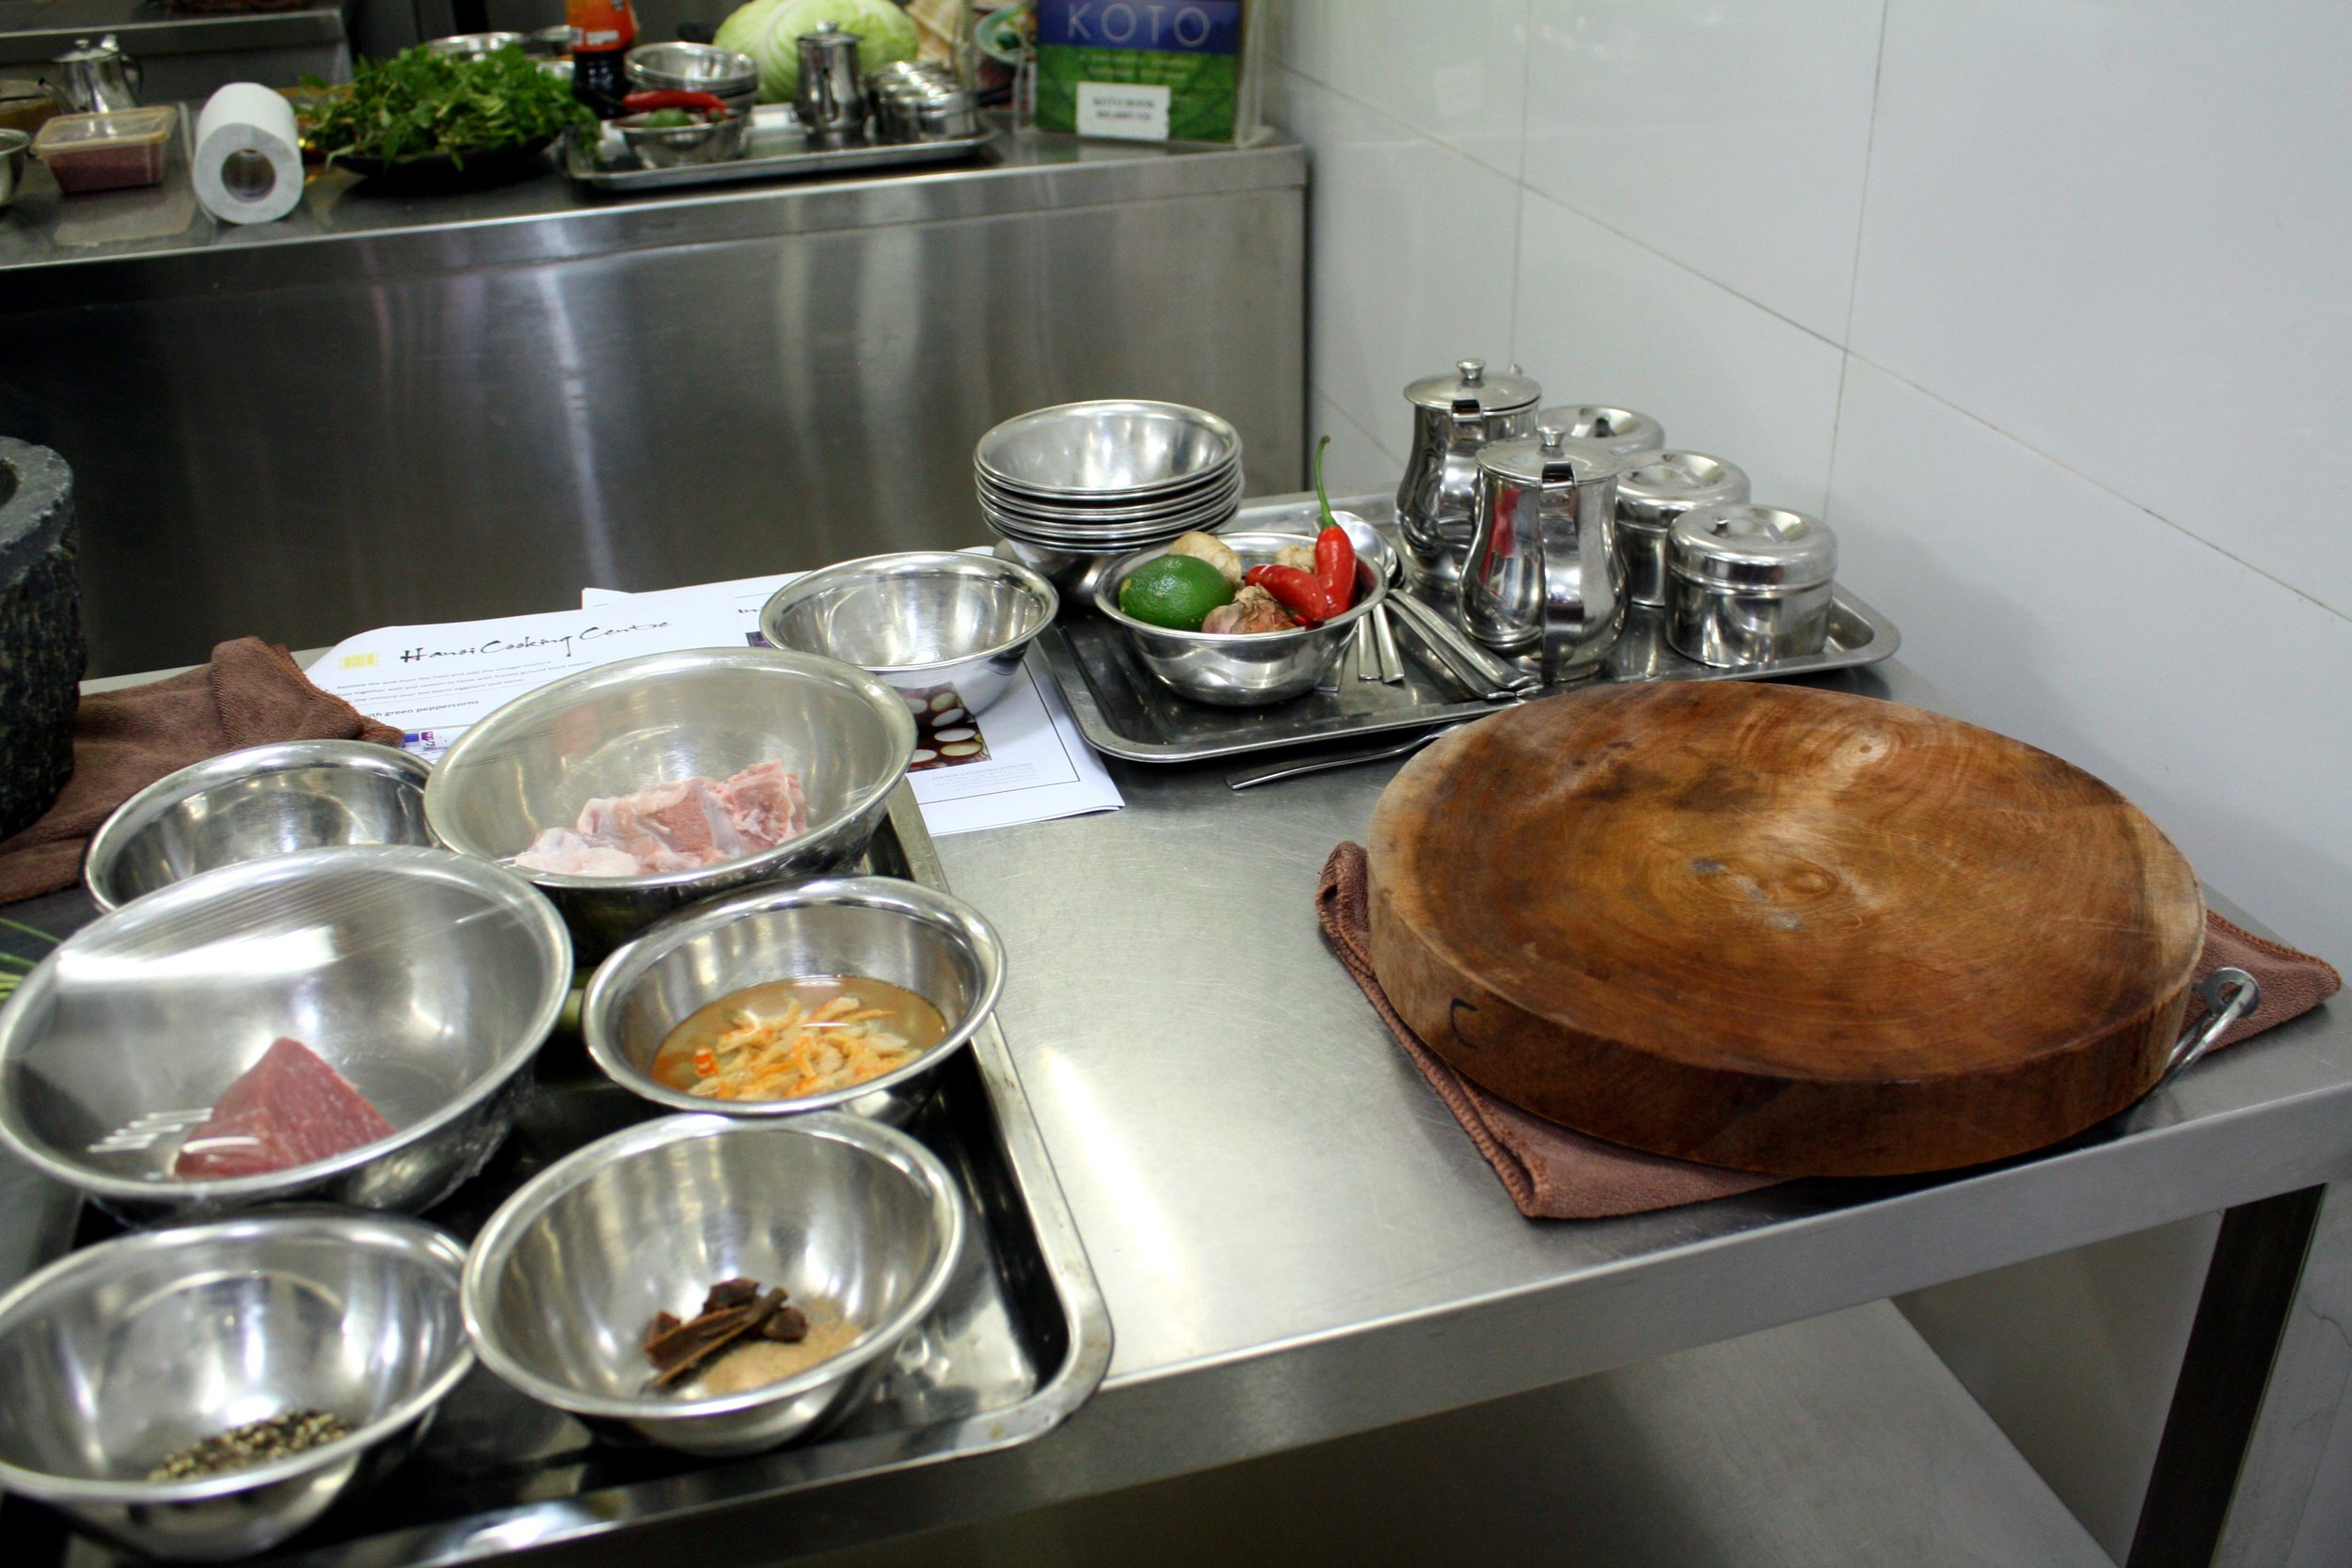 Hanoi Cooking Centre sets you up with all your ingredients and tools from the get go.